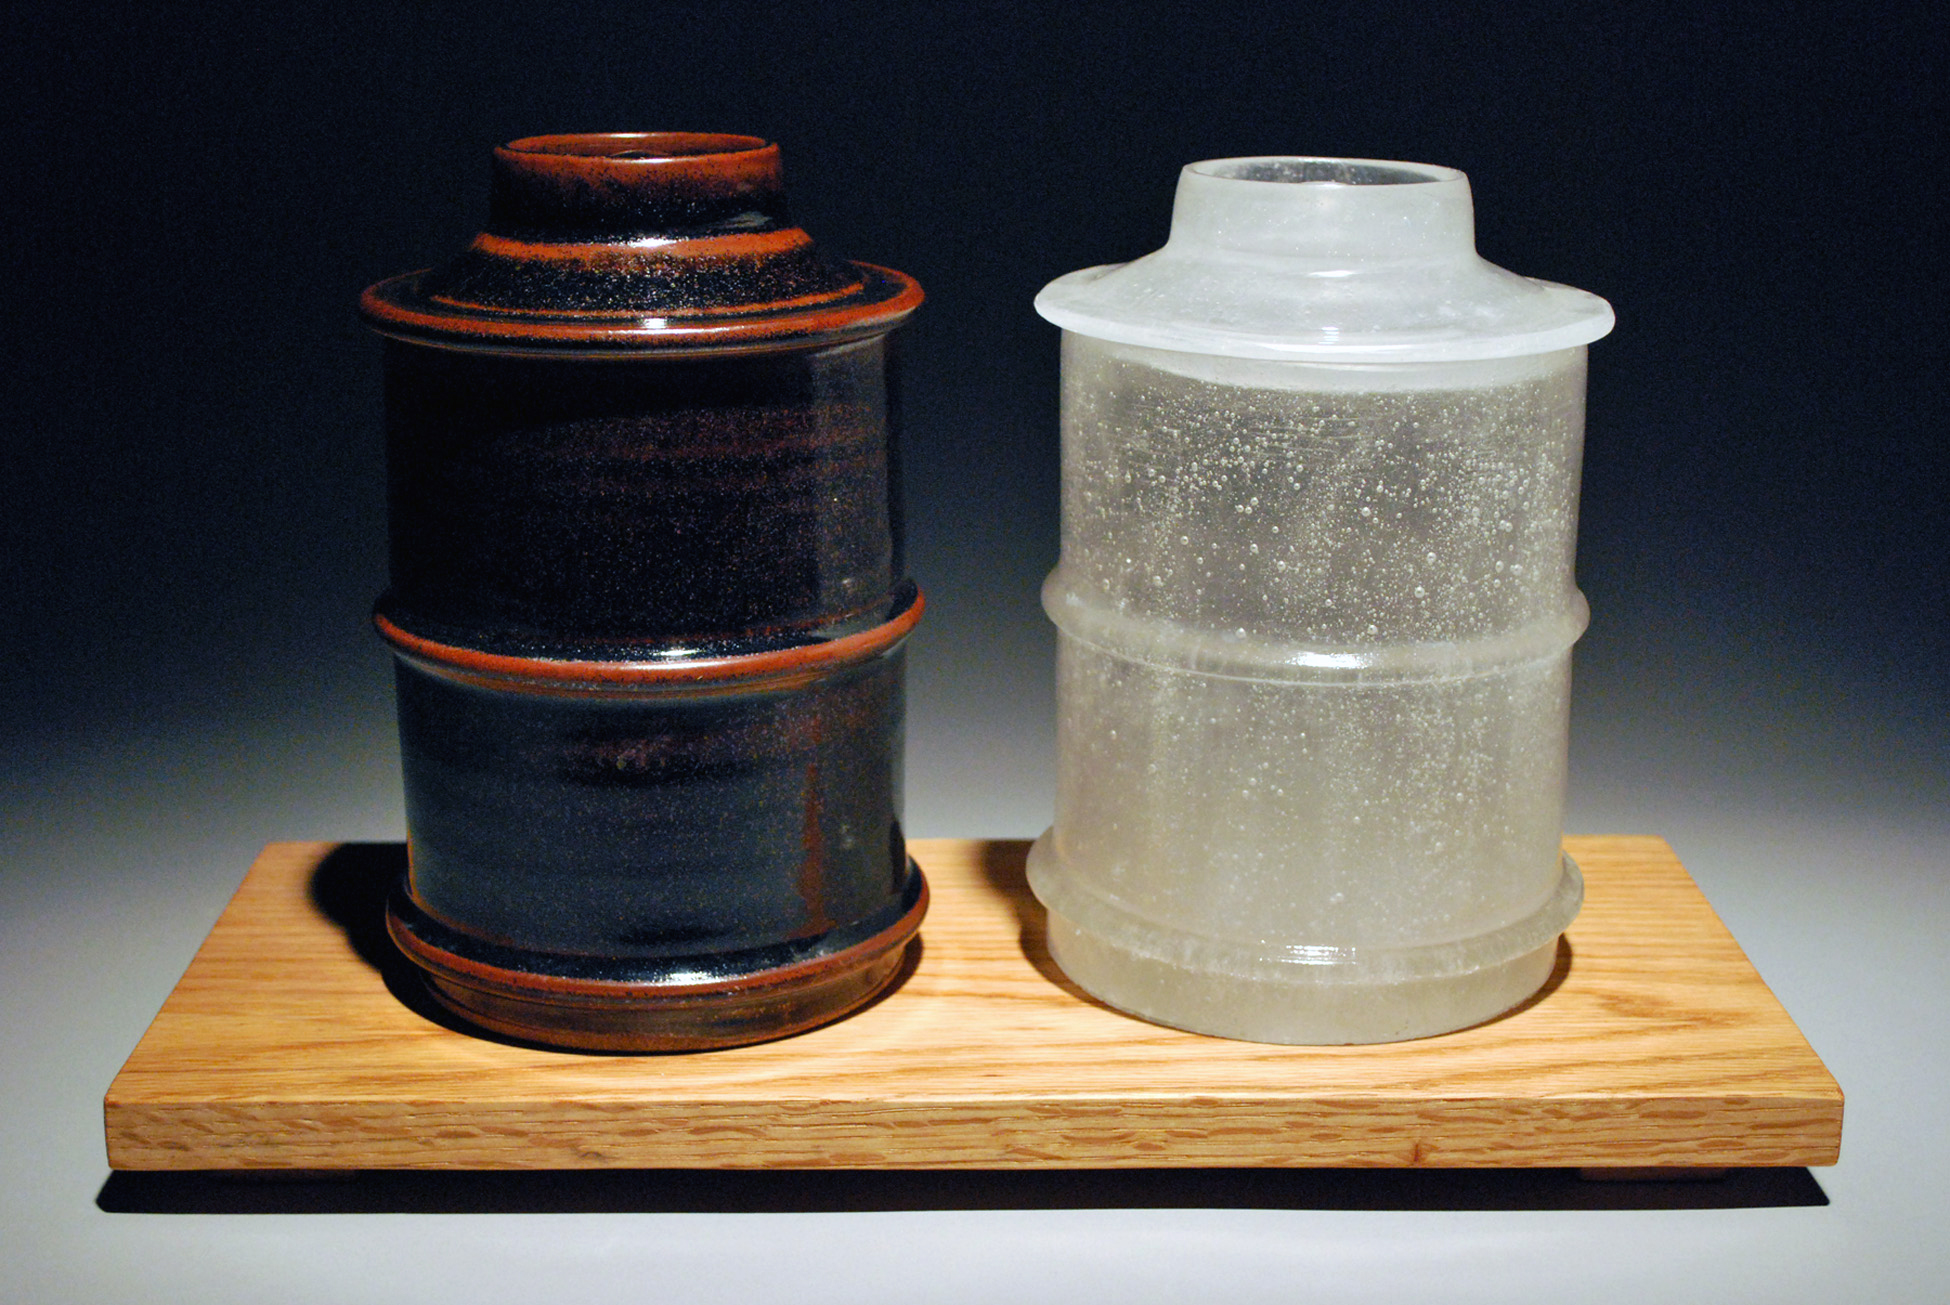 canister clay and glass.jpg